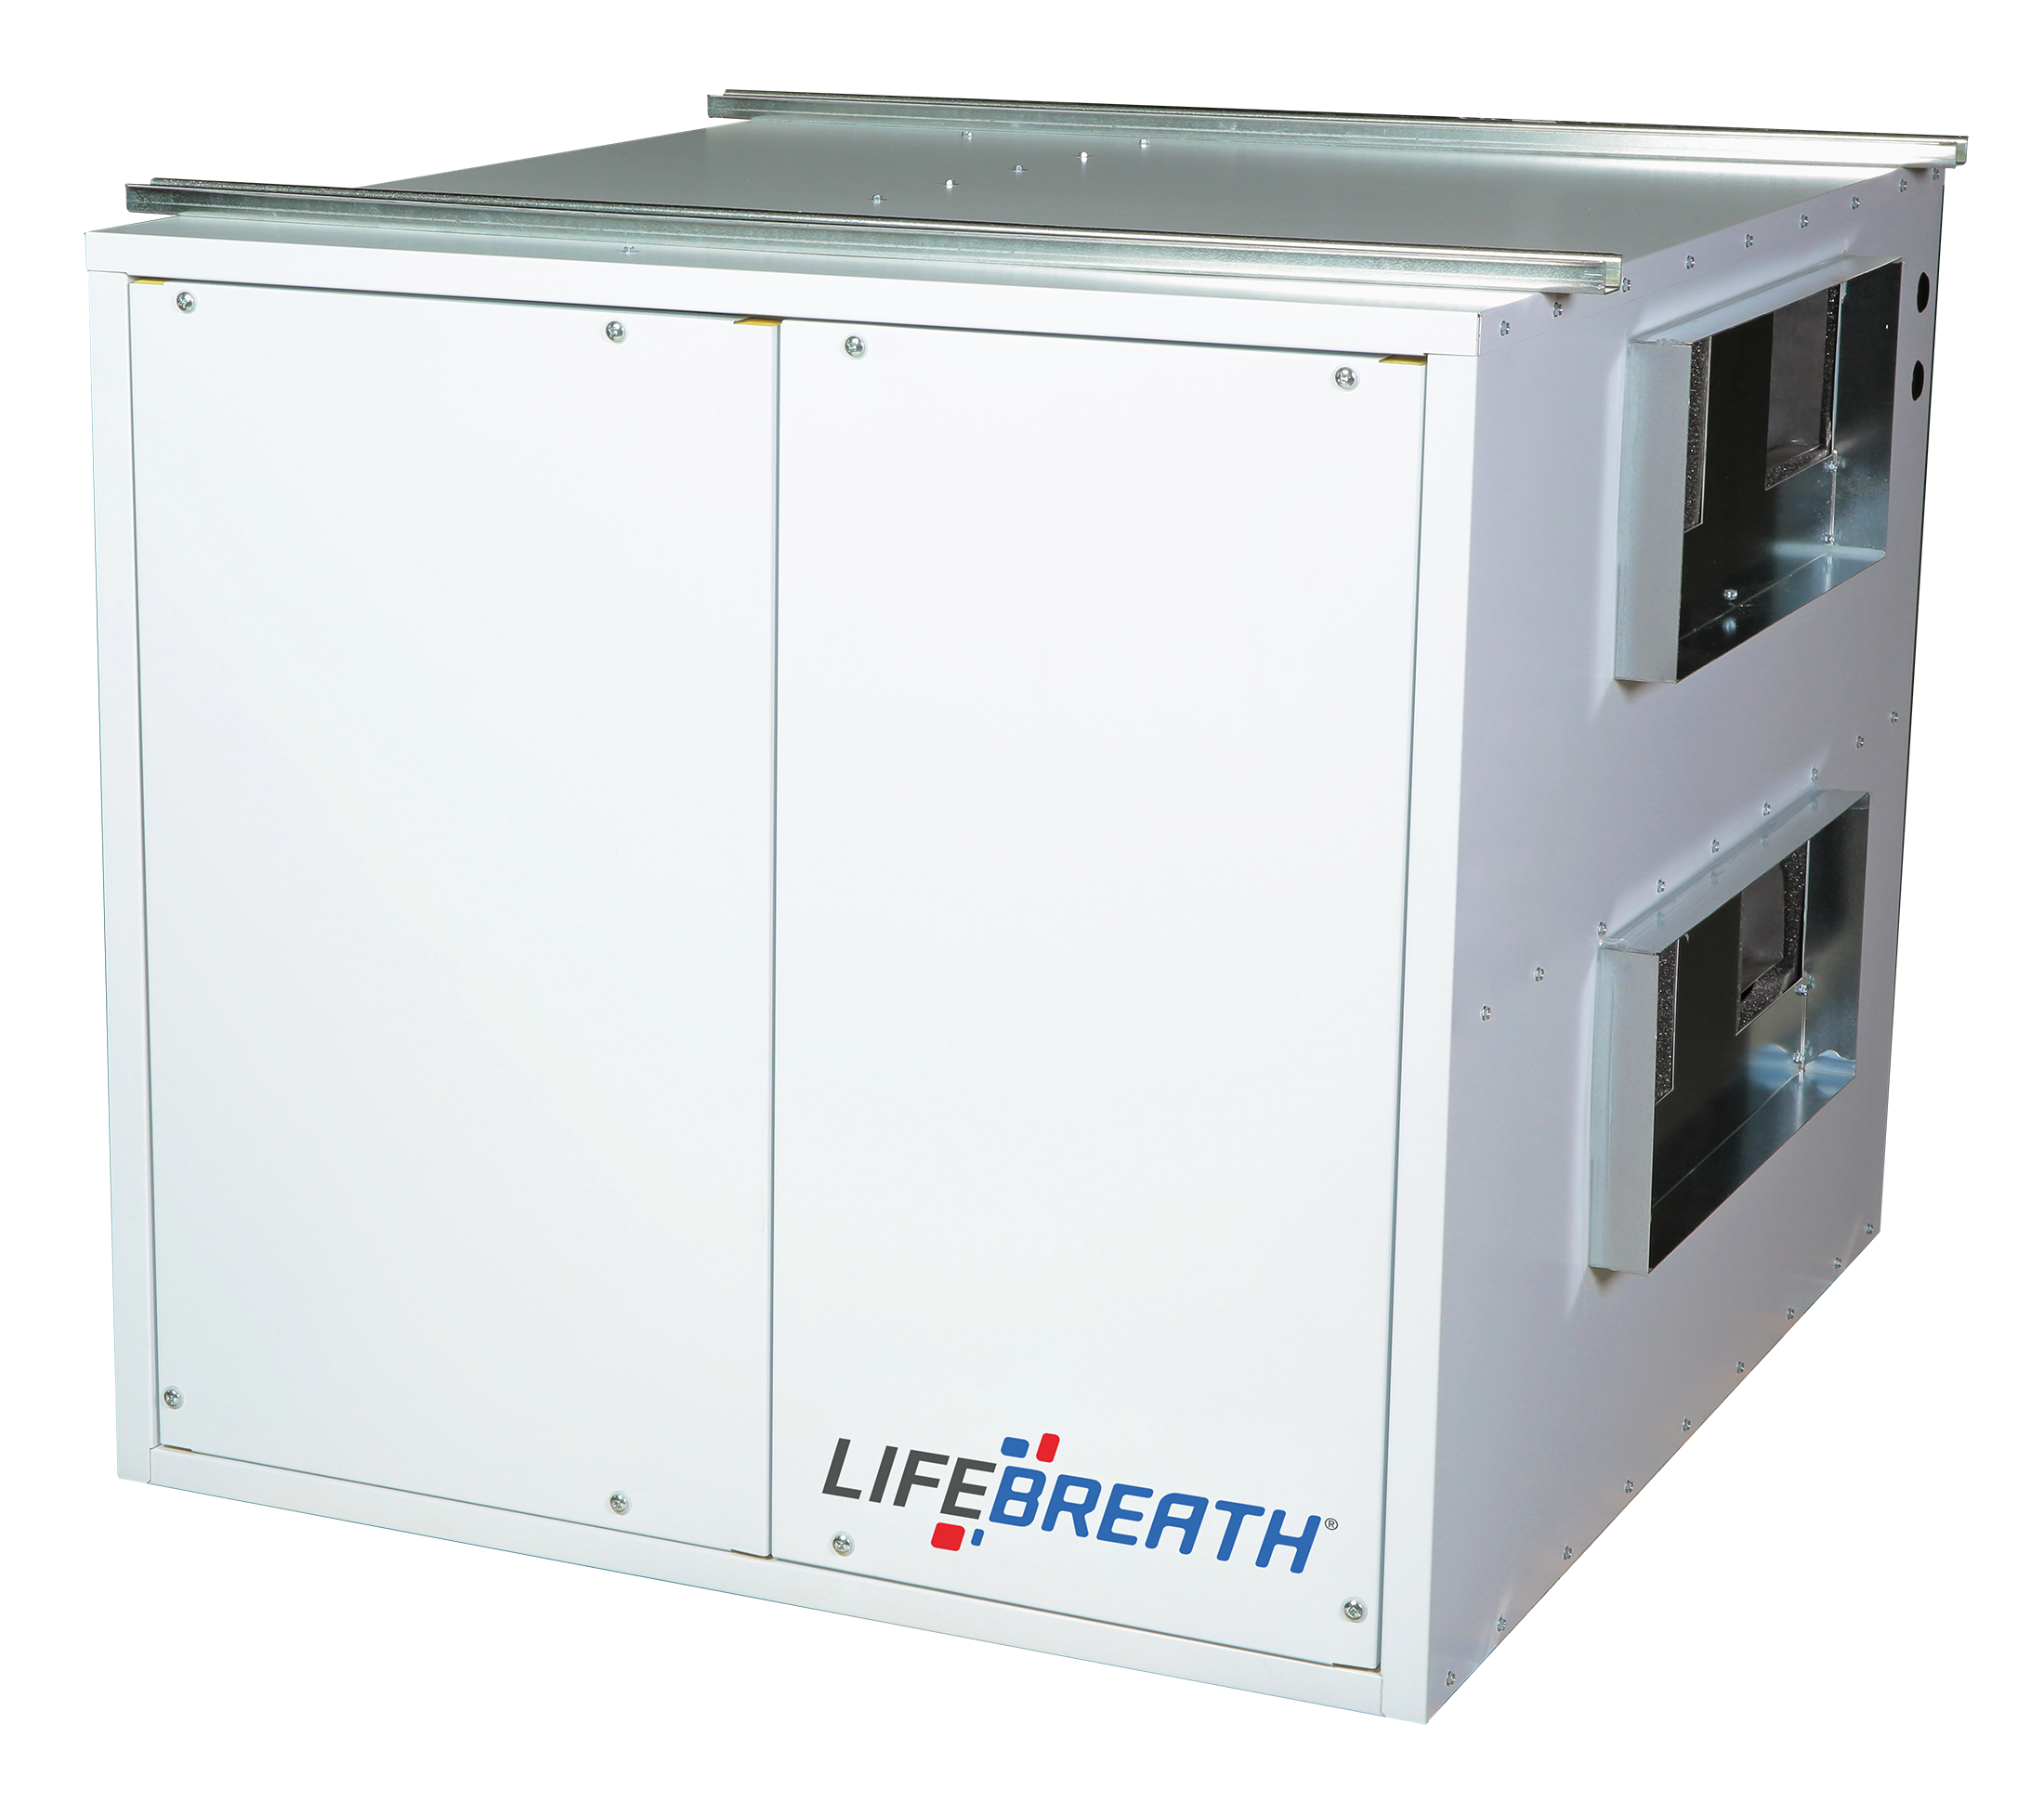 Lifebreath 730 Erv Commercial Energy Recovery Ventilator